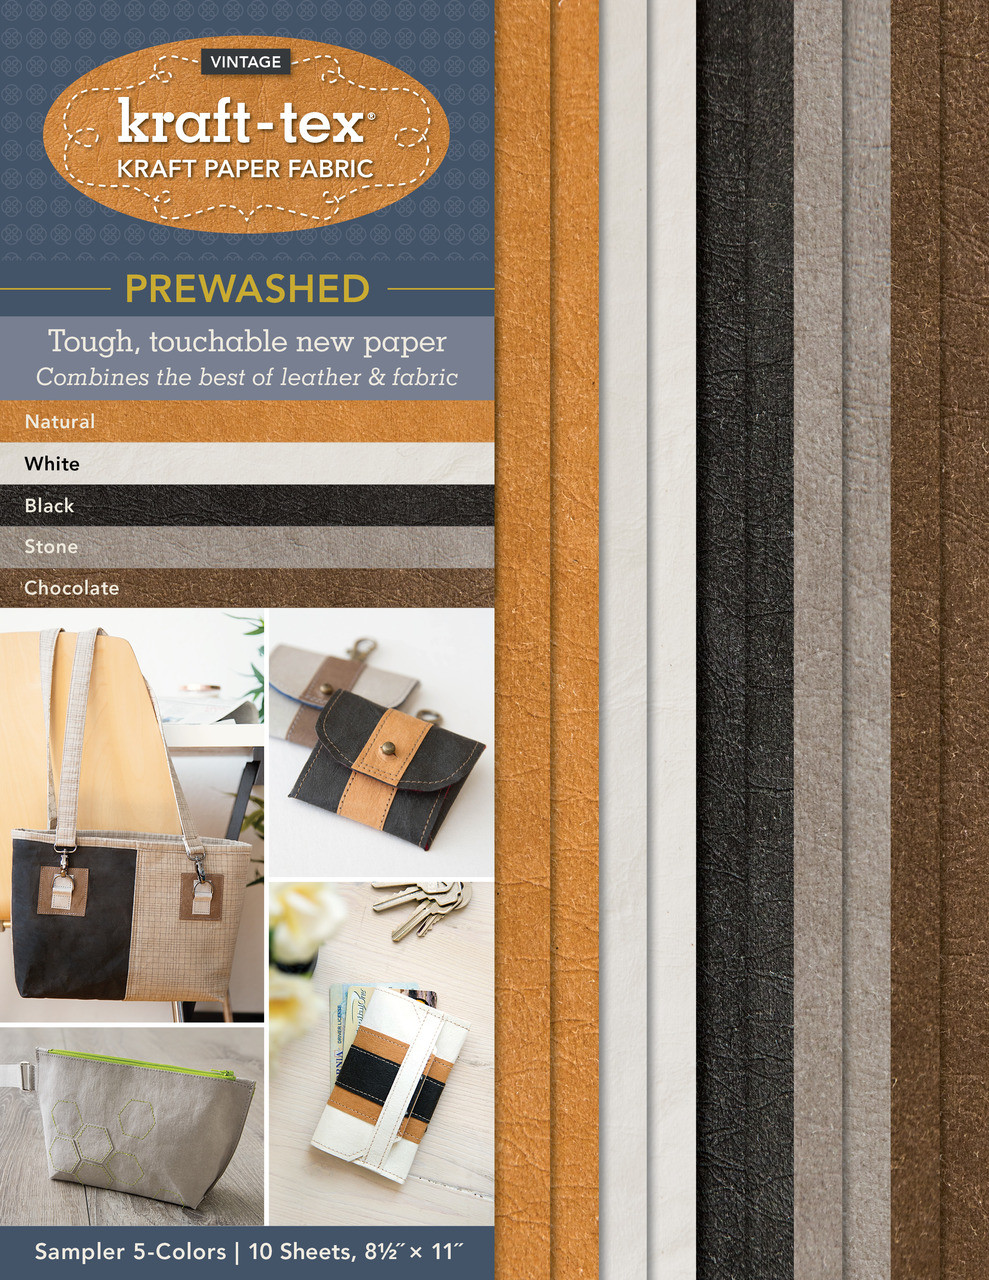 Wait until you get your hands on the rugged paper that looks, feels, and wears like leather, but sews, cuts, and washes just like fabric—now with an even softer and more leather-like finish! kraft-tex® Prewashed is supple, yet strong enough to use for projects that get tough wear. 8 ½˝ × 11˝ sheets are perfect for adding embellishments or making smaller projects. This sumptuous surface is prewashed, pre-shunk, eco-friendly, tear-resistant, and so much more.